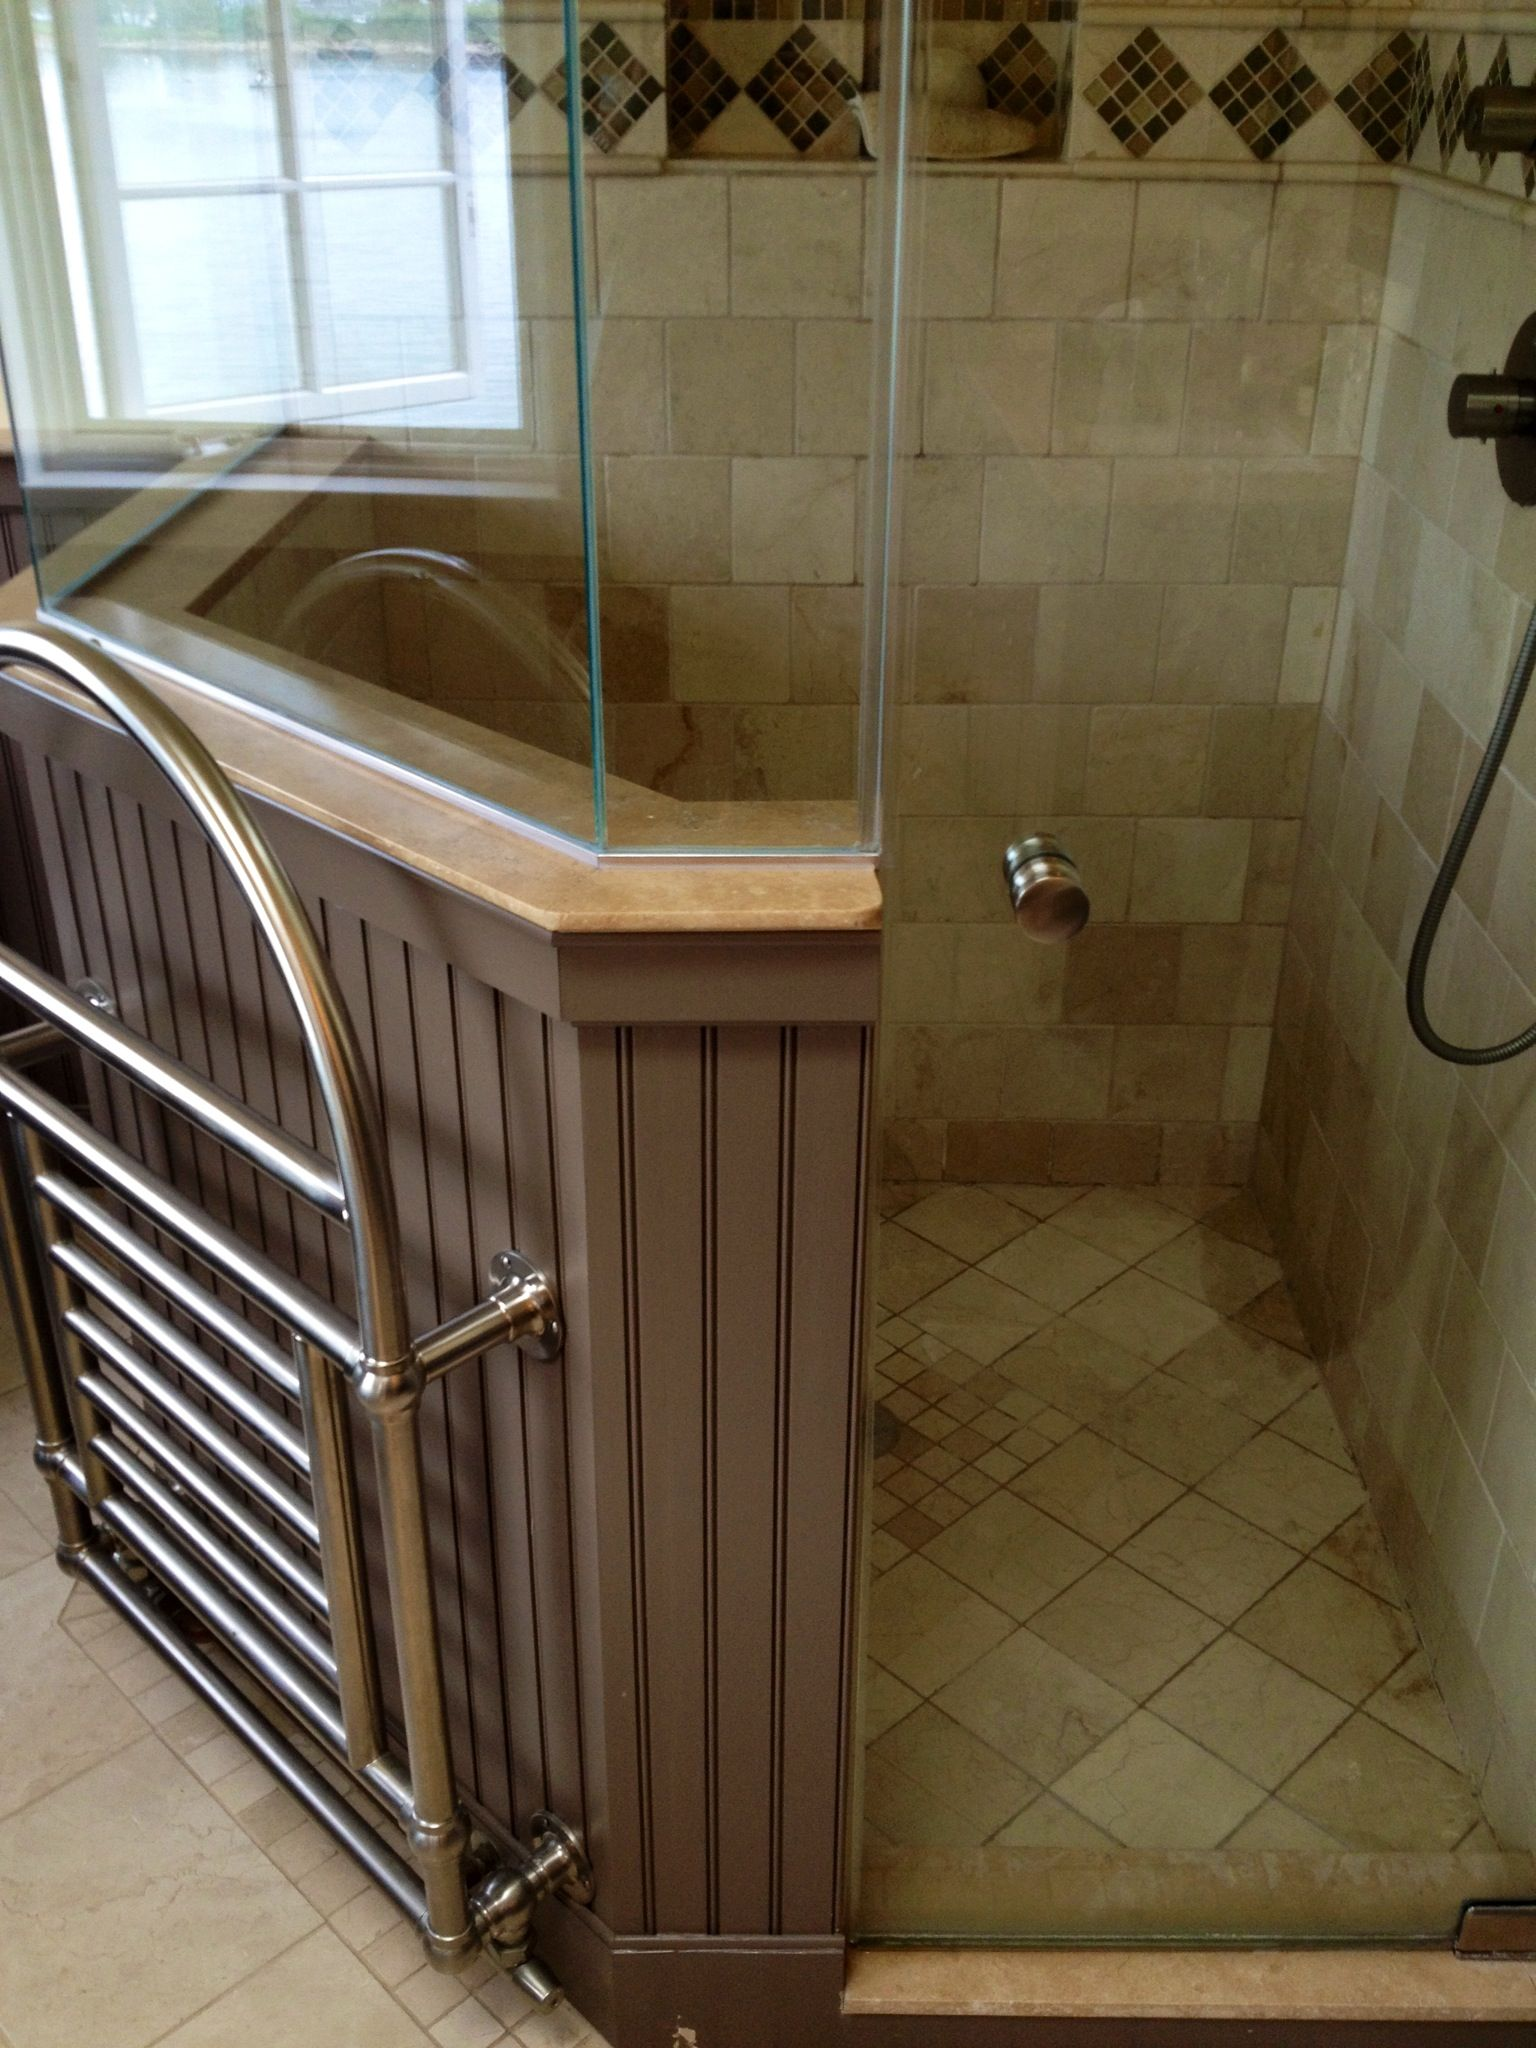 Corner Tiled Shower With Beadboard Half Wall Topped With Glass